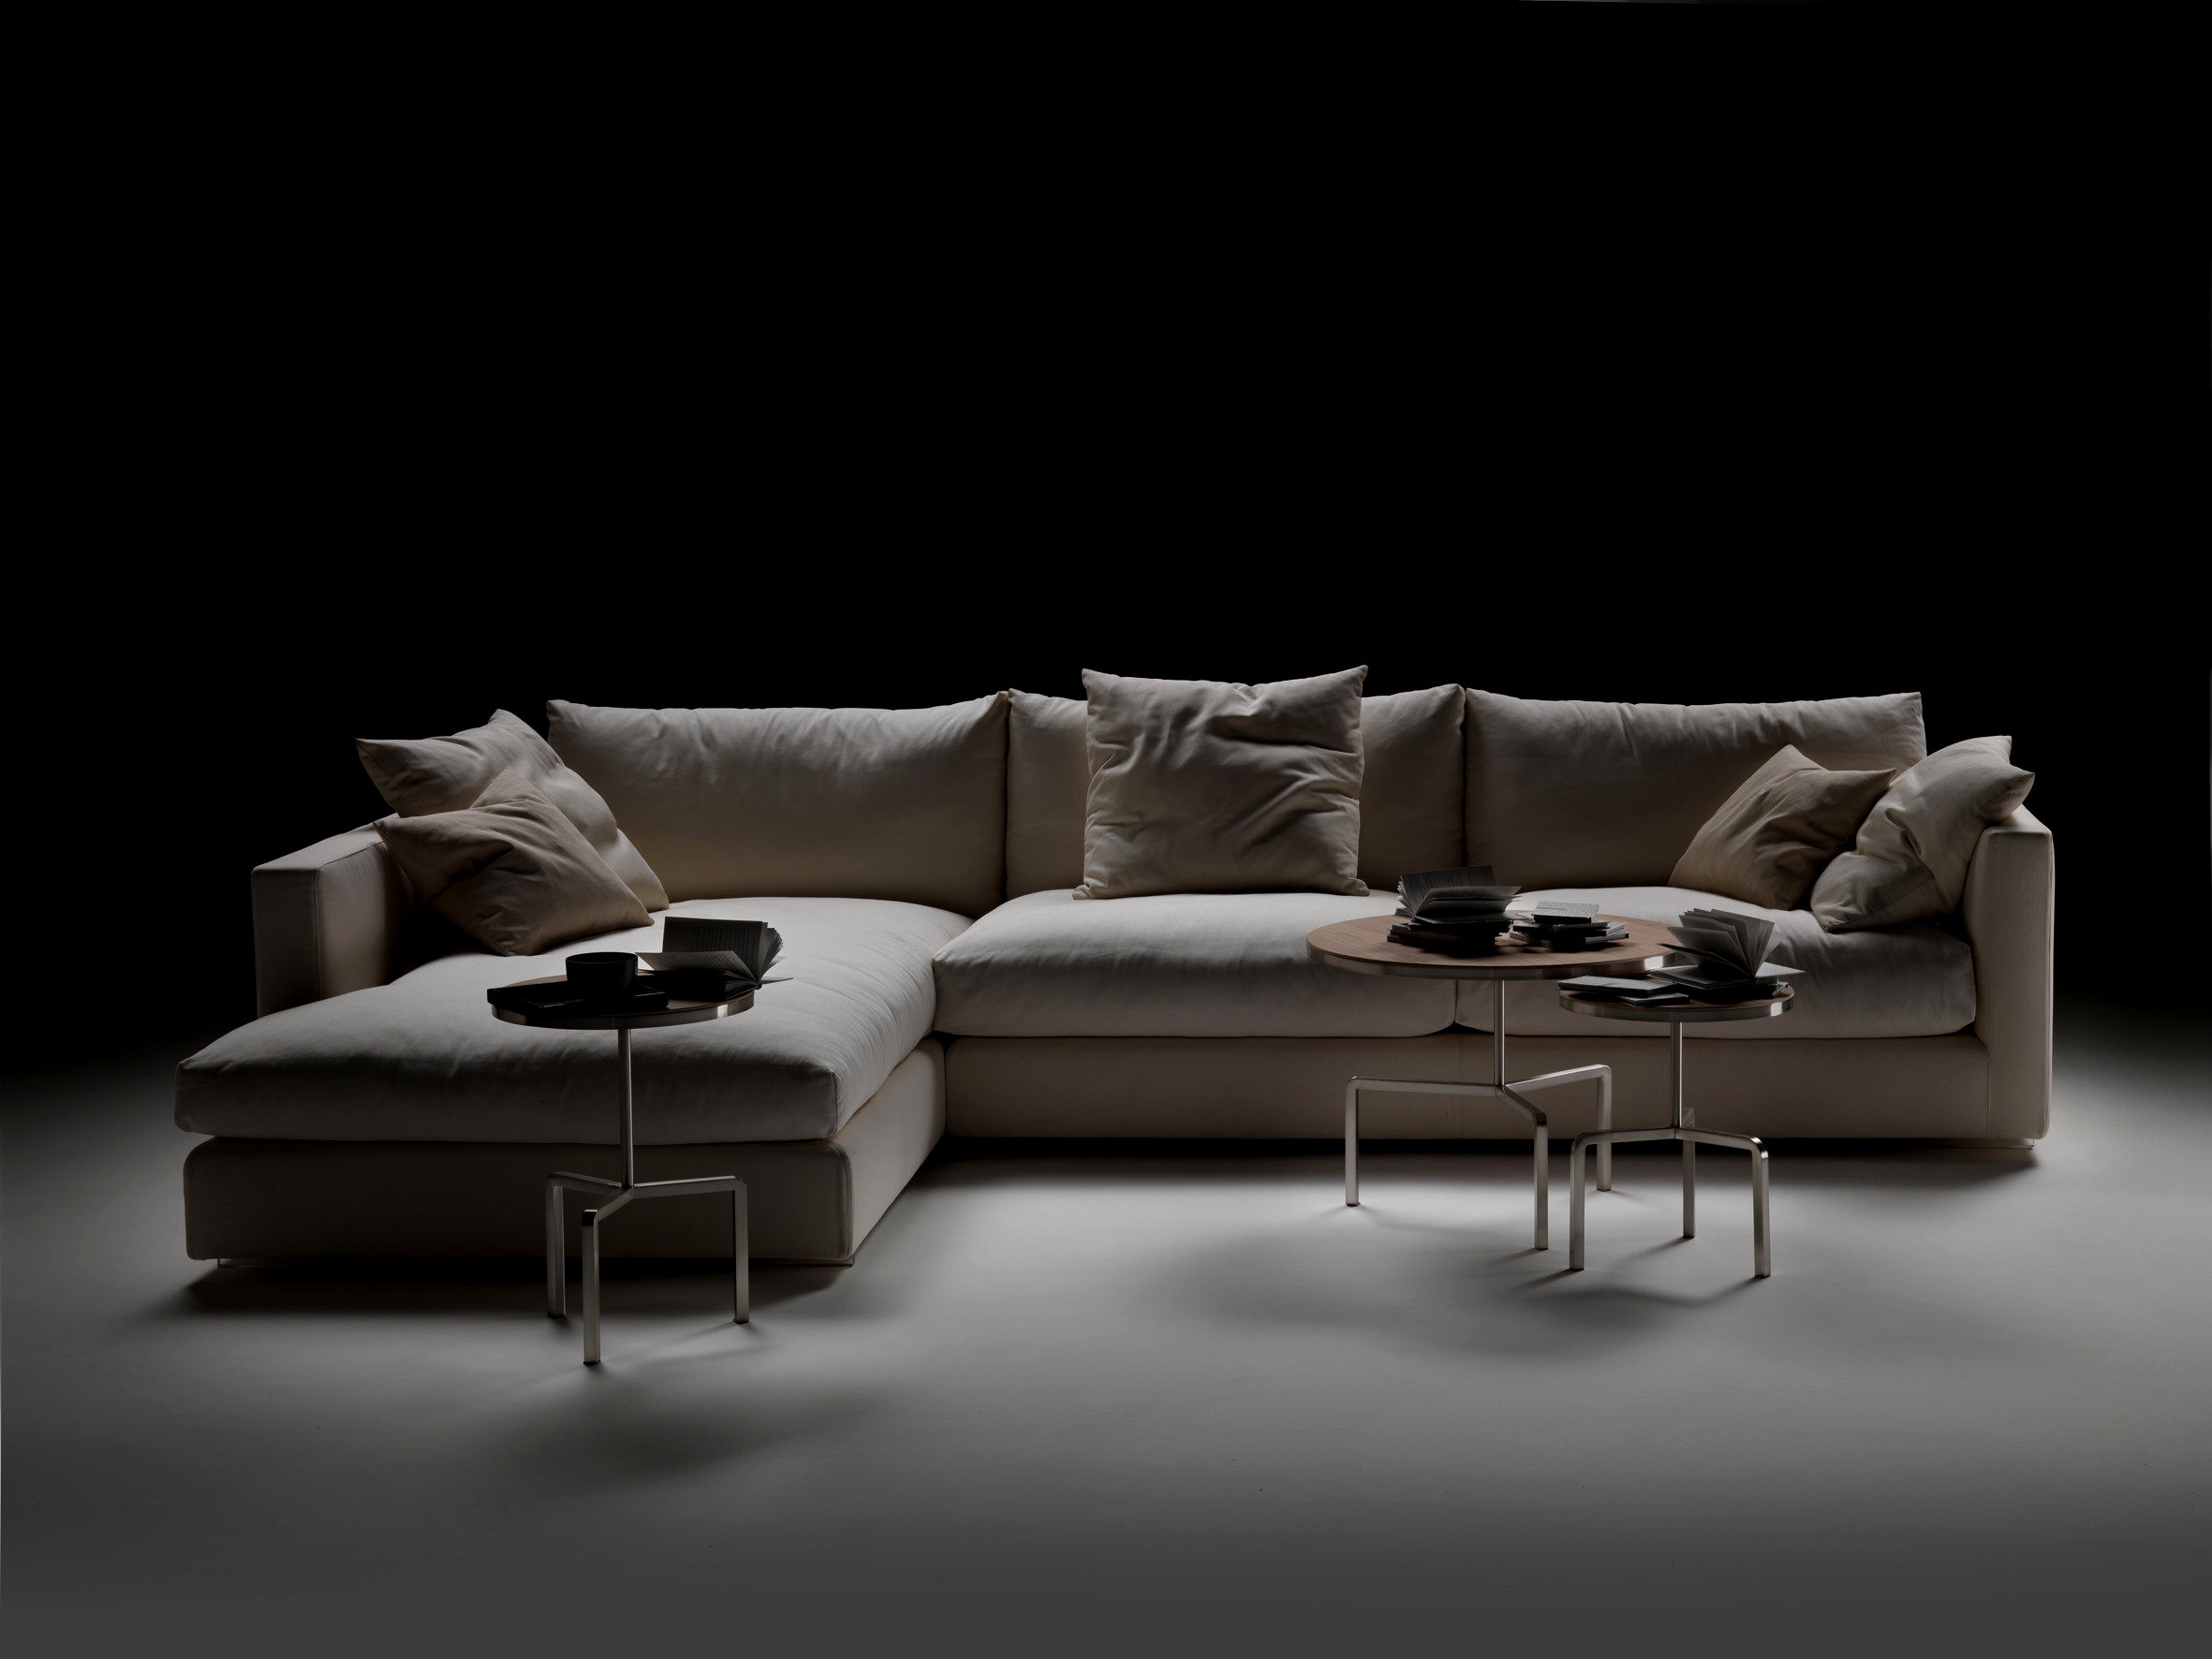 stylish apartment size sectional sofa architecture-Cool Apartment Size Sectional sofa Picture